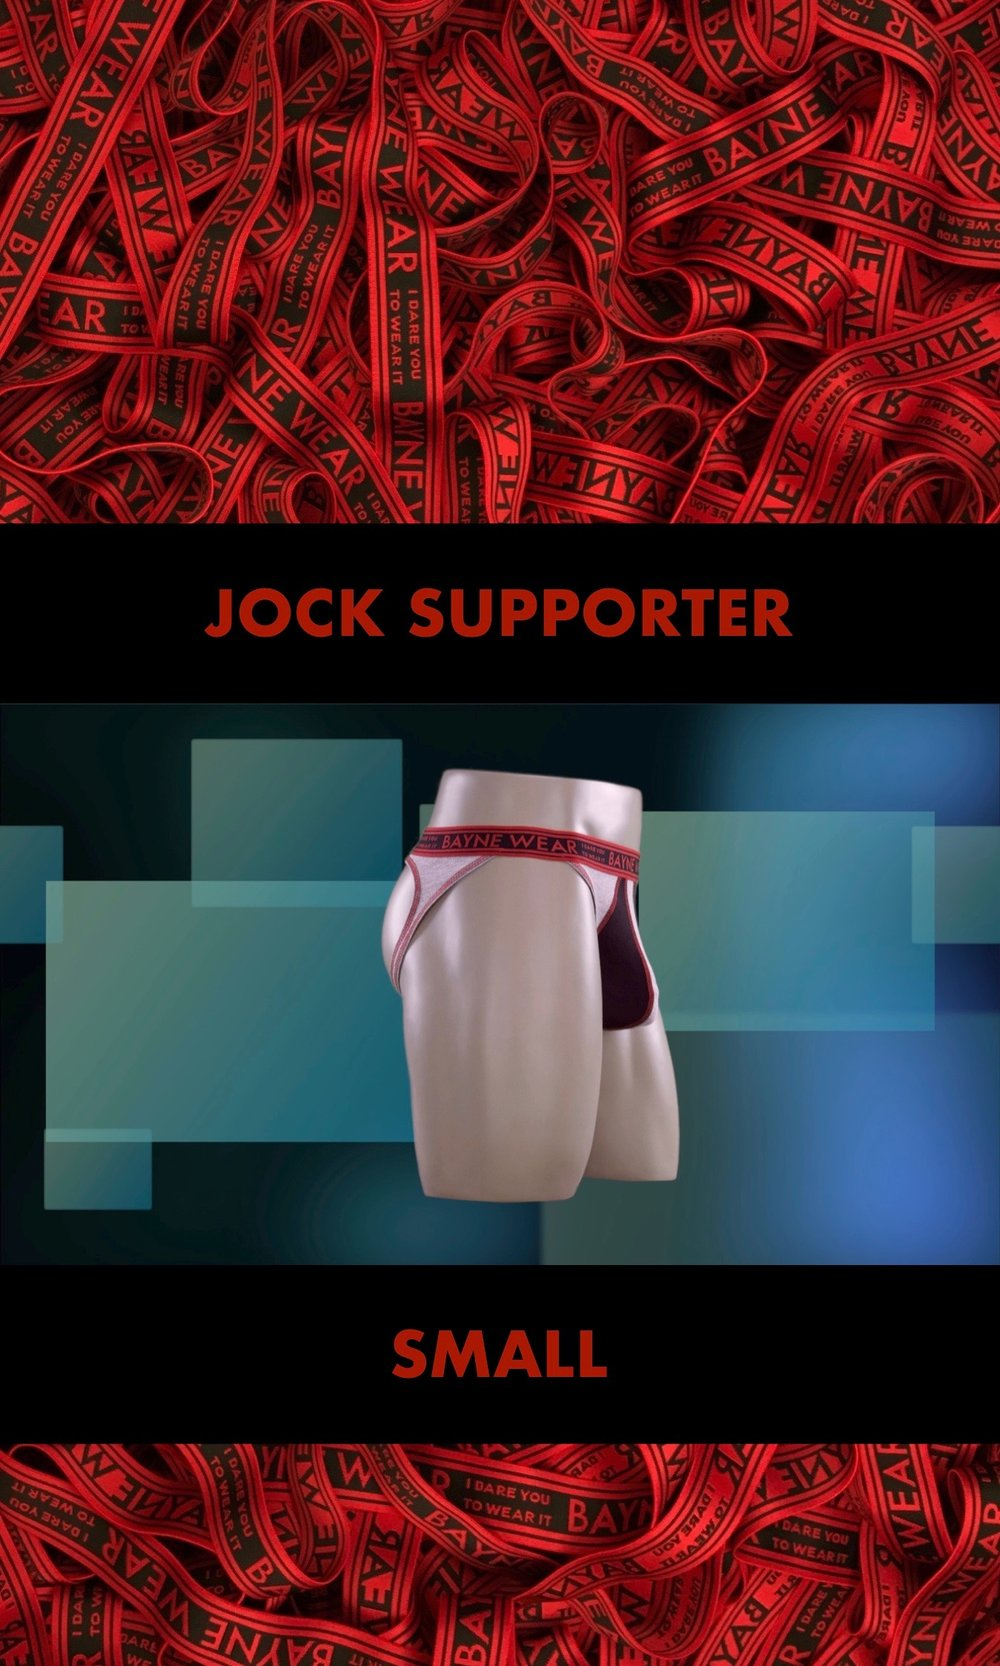 GARMENT TAG 2018 BACK JOCK SUPPORTER SMALL 2.jpg